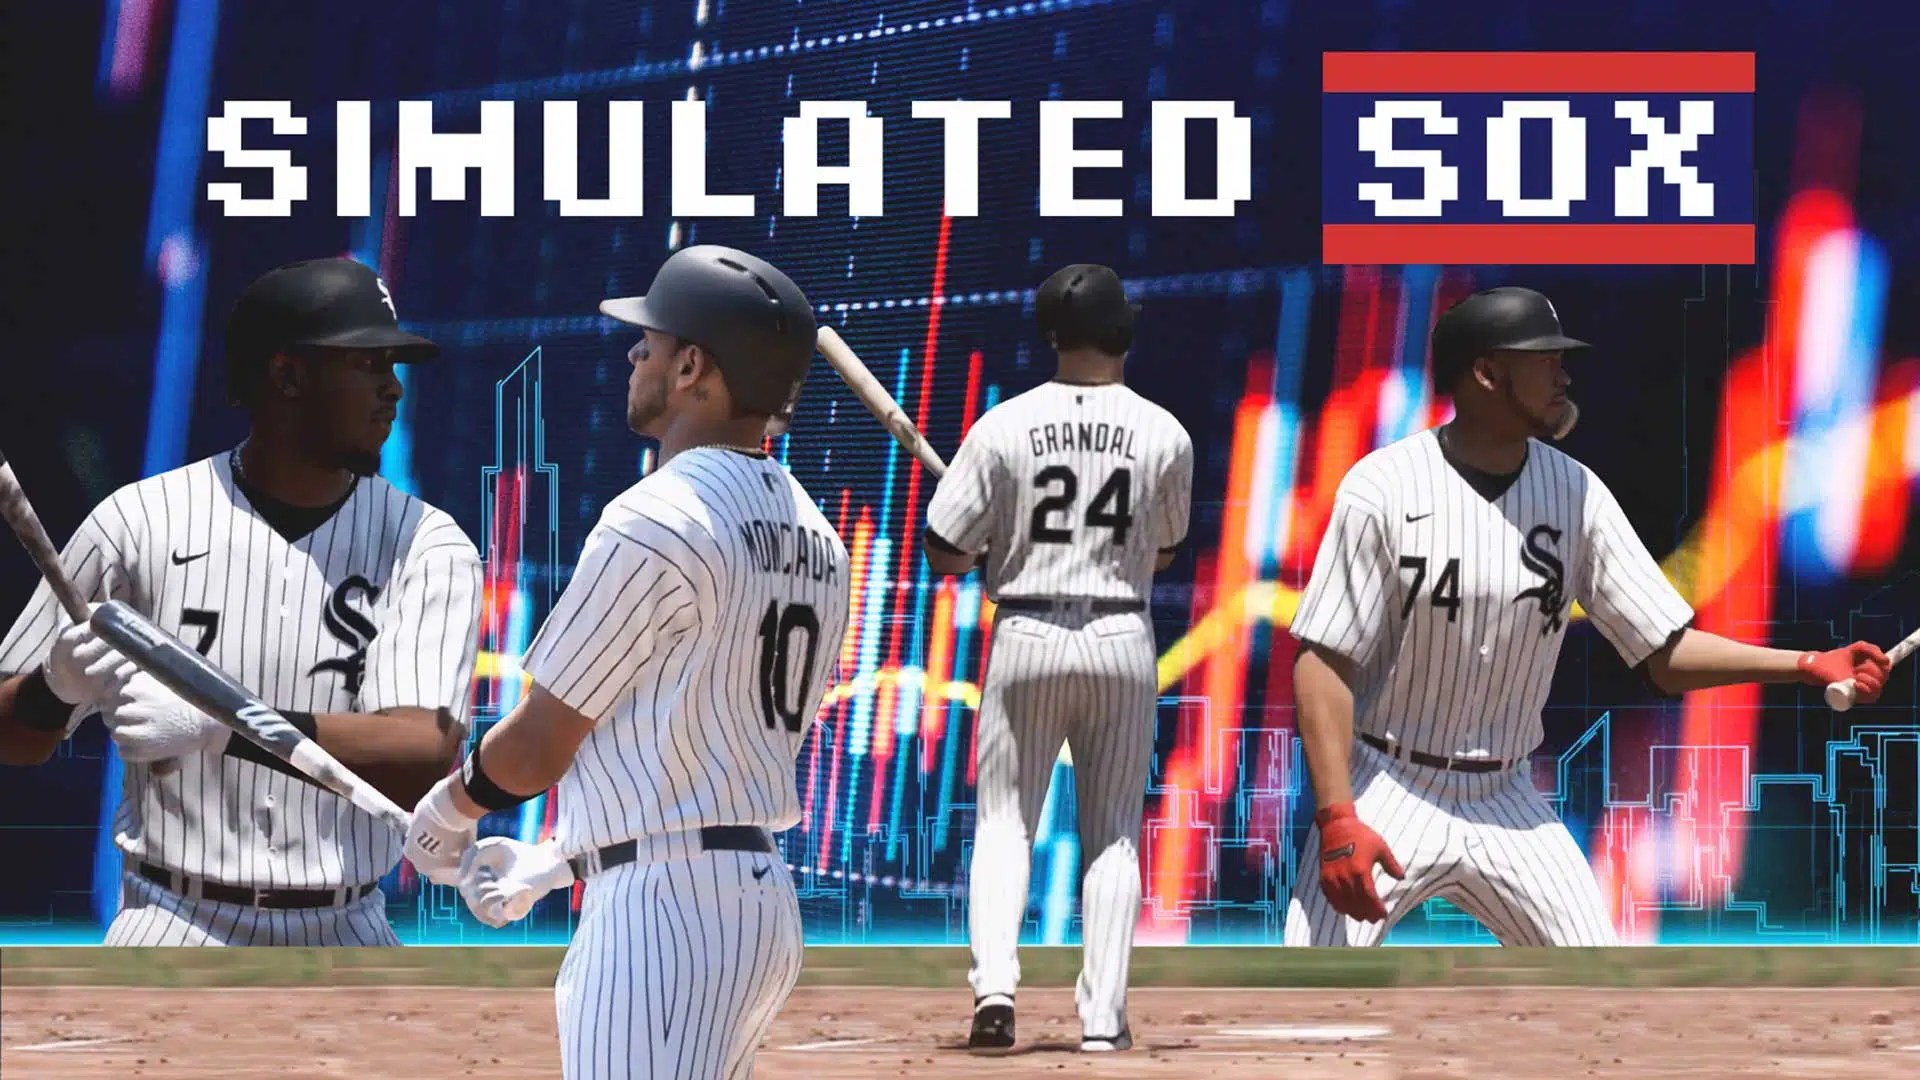 Simulated Sox White Sox Vs Twins September 6th Sox On